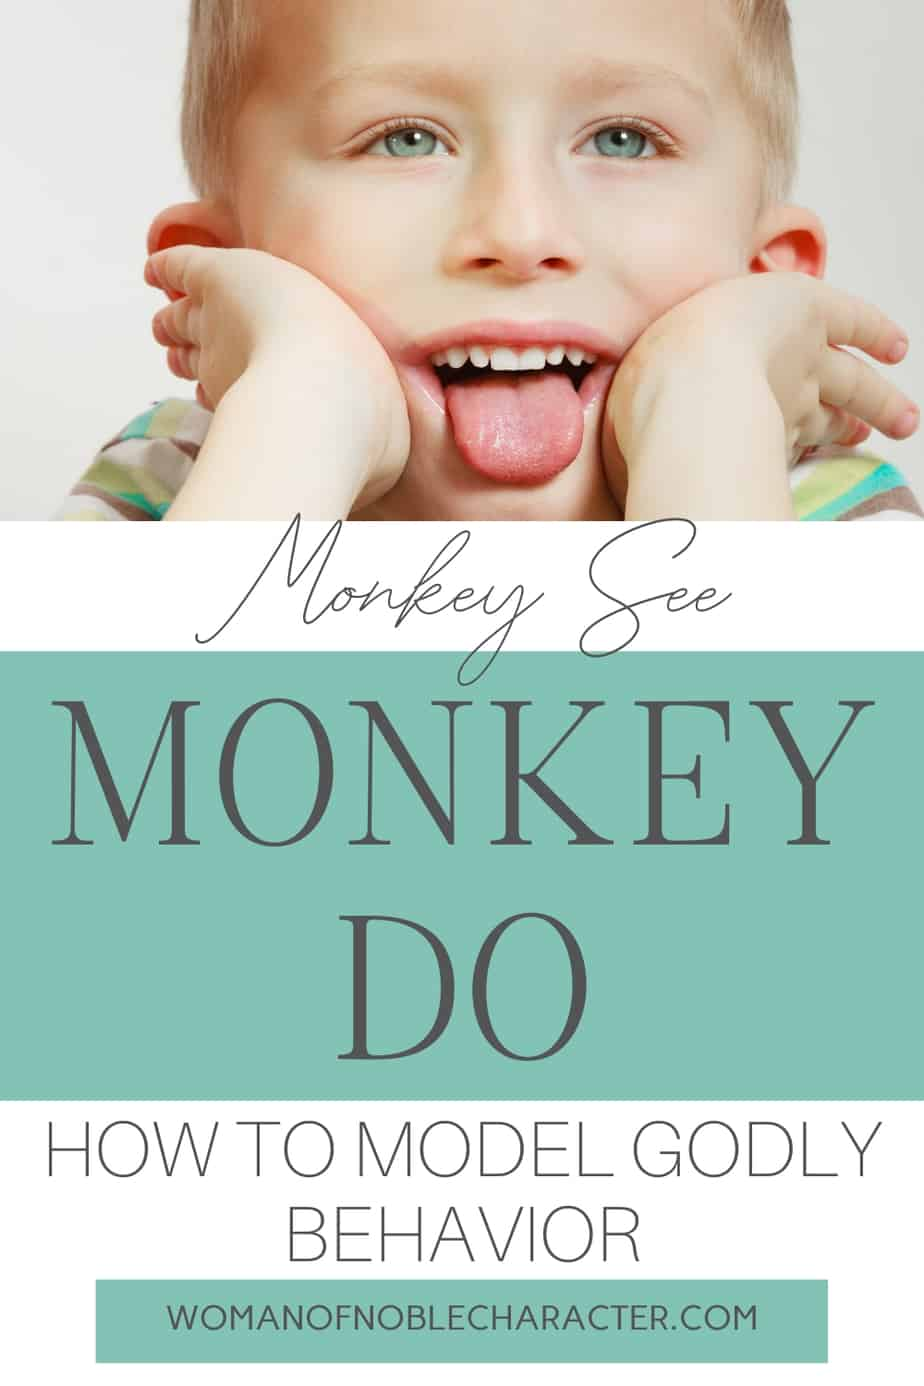 An image of a young, blonde boy with his hands up on his cheeks and his tongue sticking out and text overlay that says Monkey See, Monkey Do_ How to Model Godly Behavior